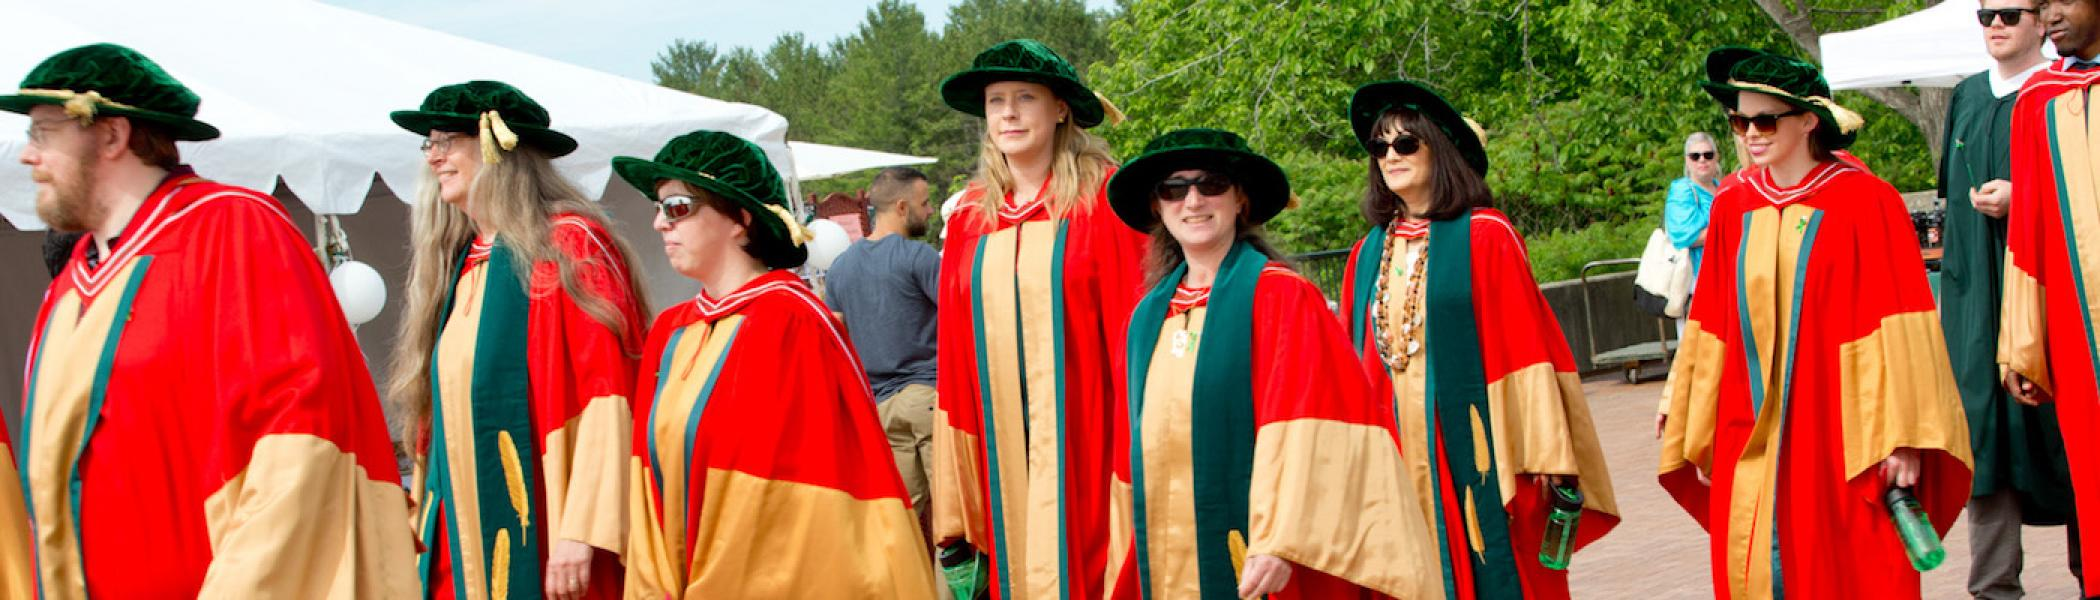 A group of graduate students walking in a line on convocation